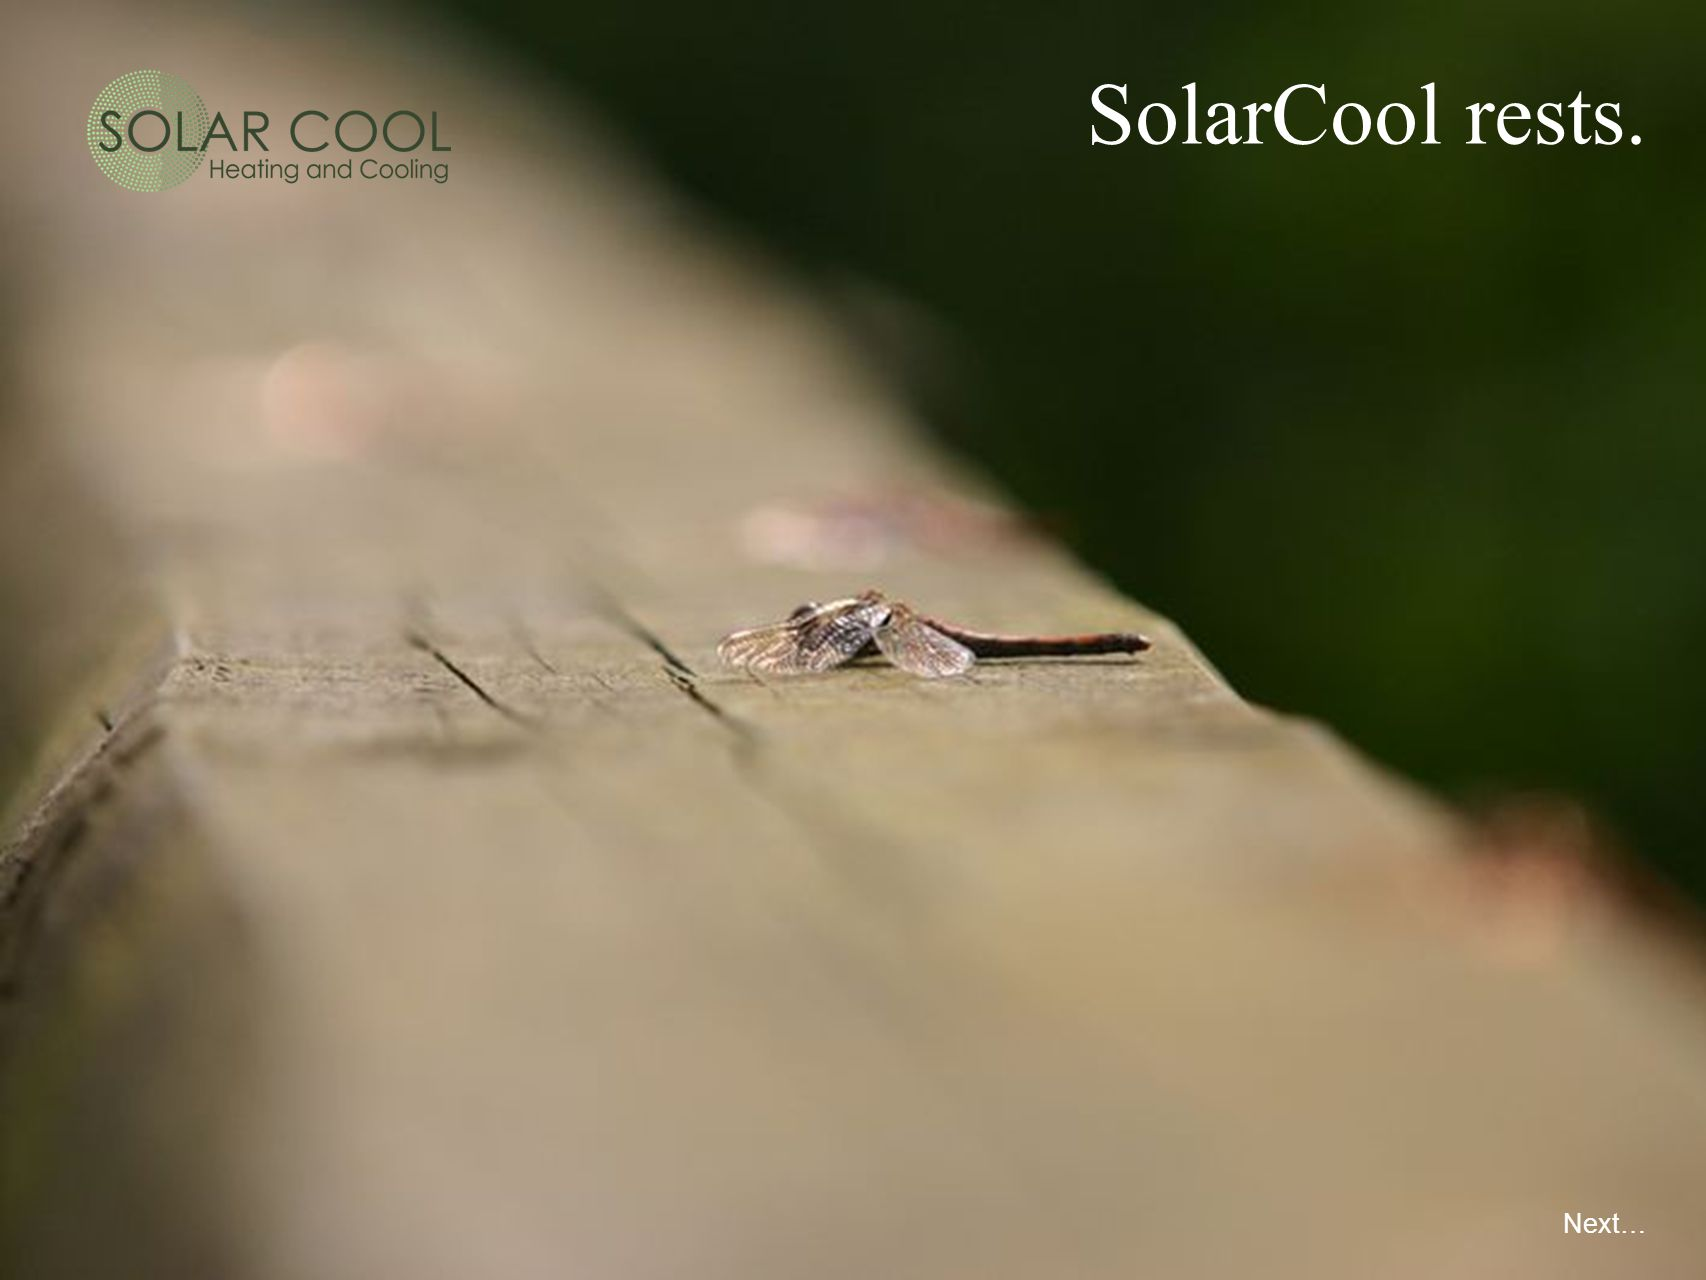 SolarCool rests. Next…